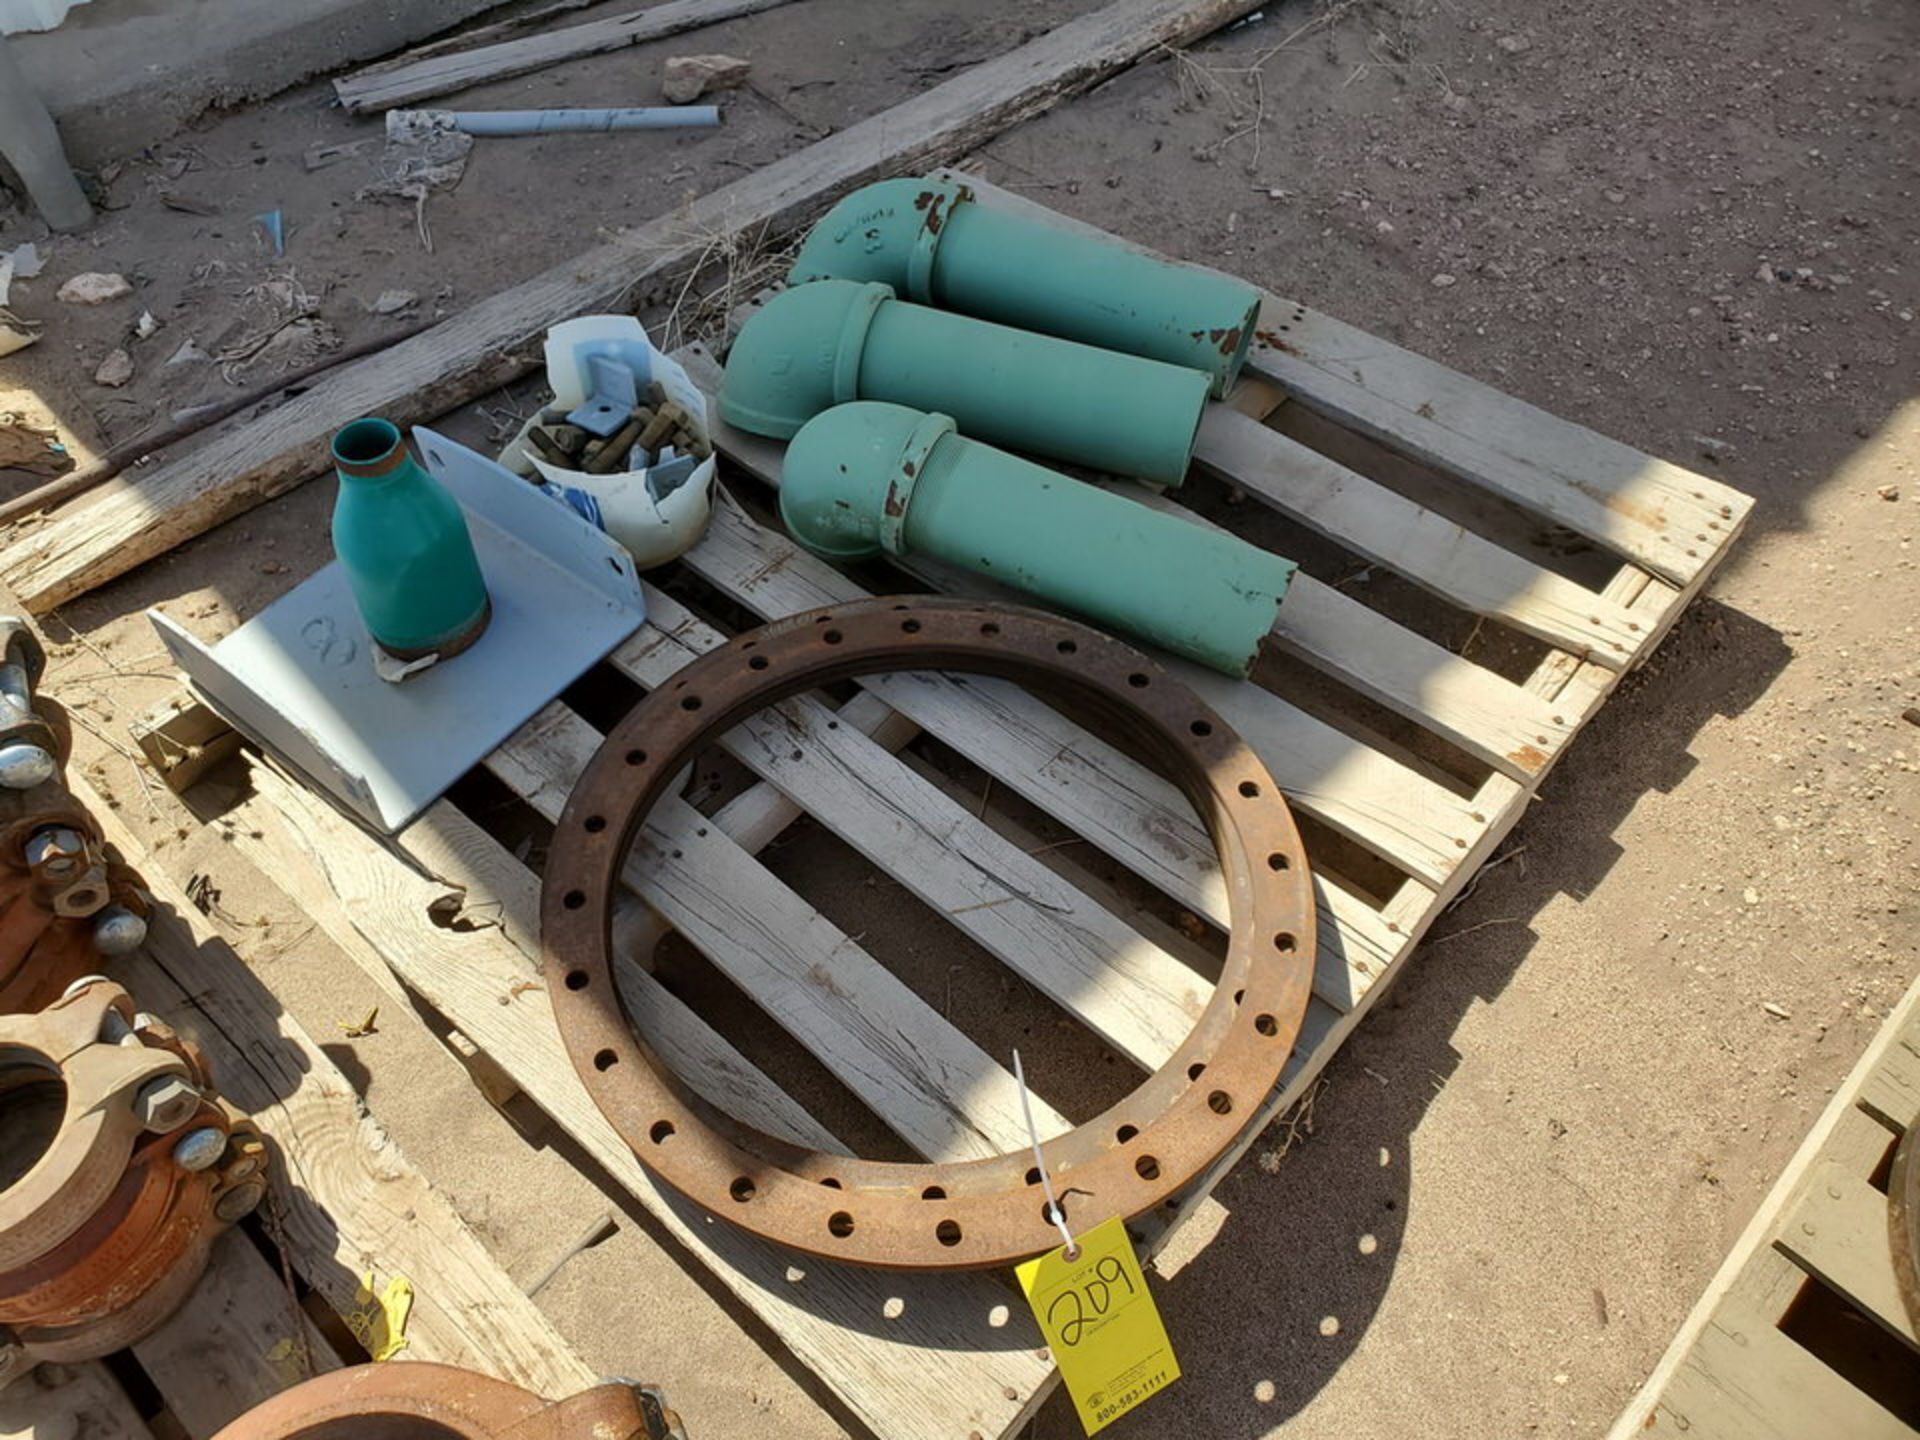 Assorted Fittings To Include But Not Limited To: Assorted Flanges, Caps, Couplings, etc.; Size - Image 6 of 14